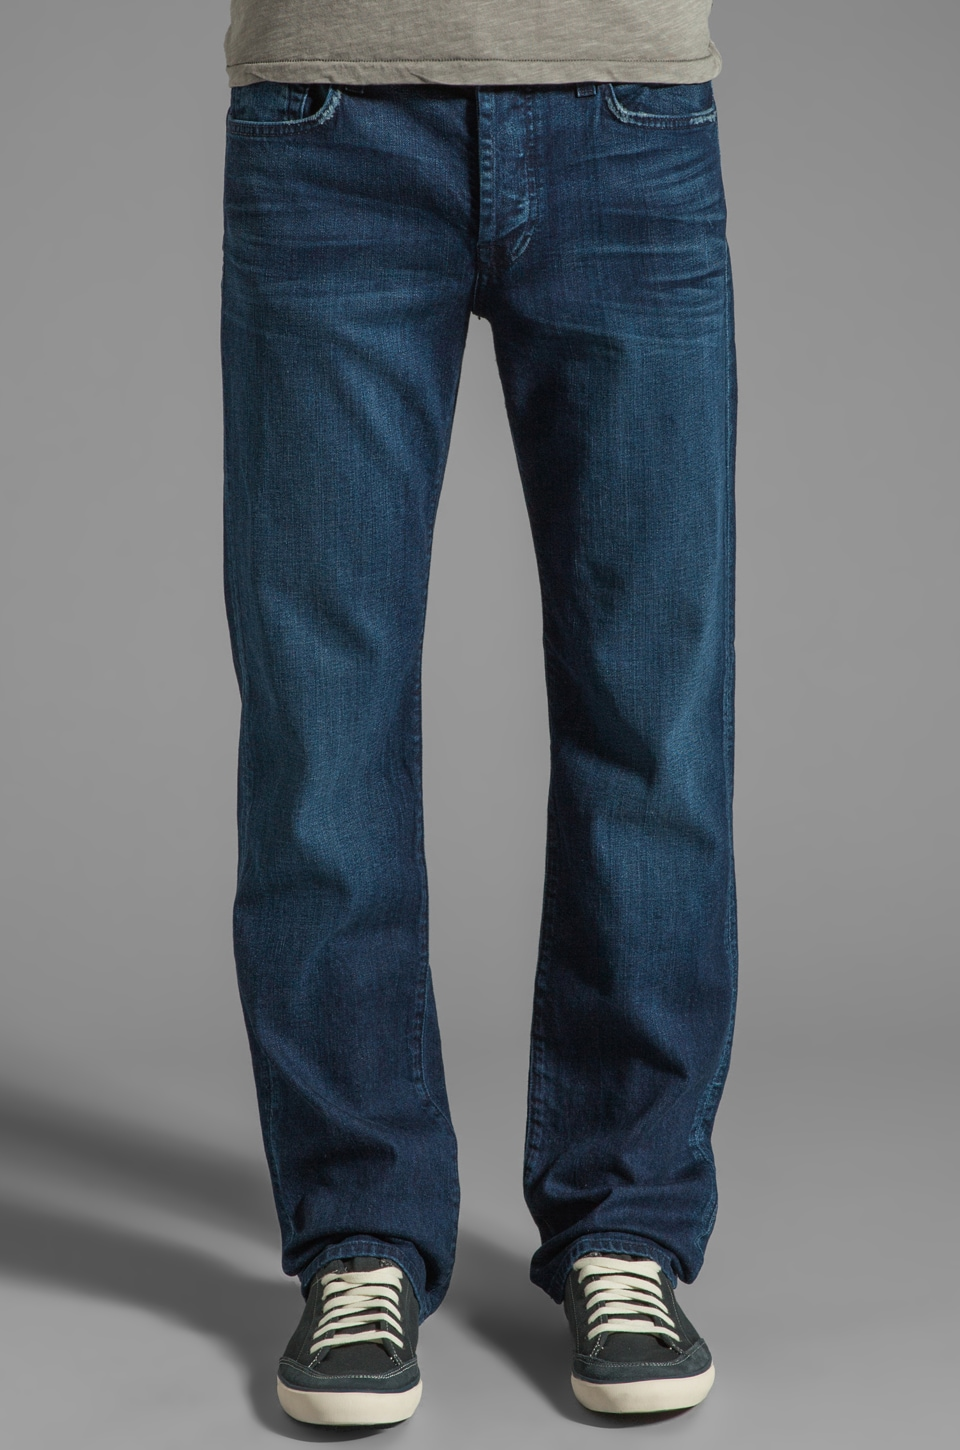 7 For All Mankind Standard in Authentic Indigo